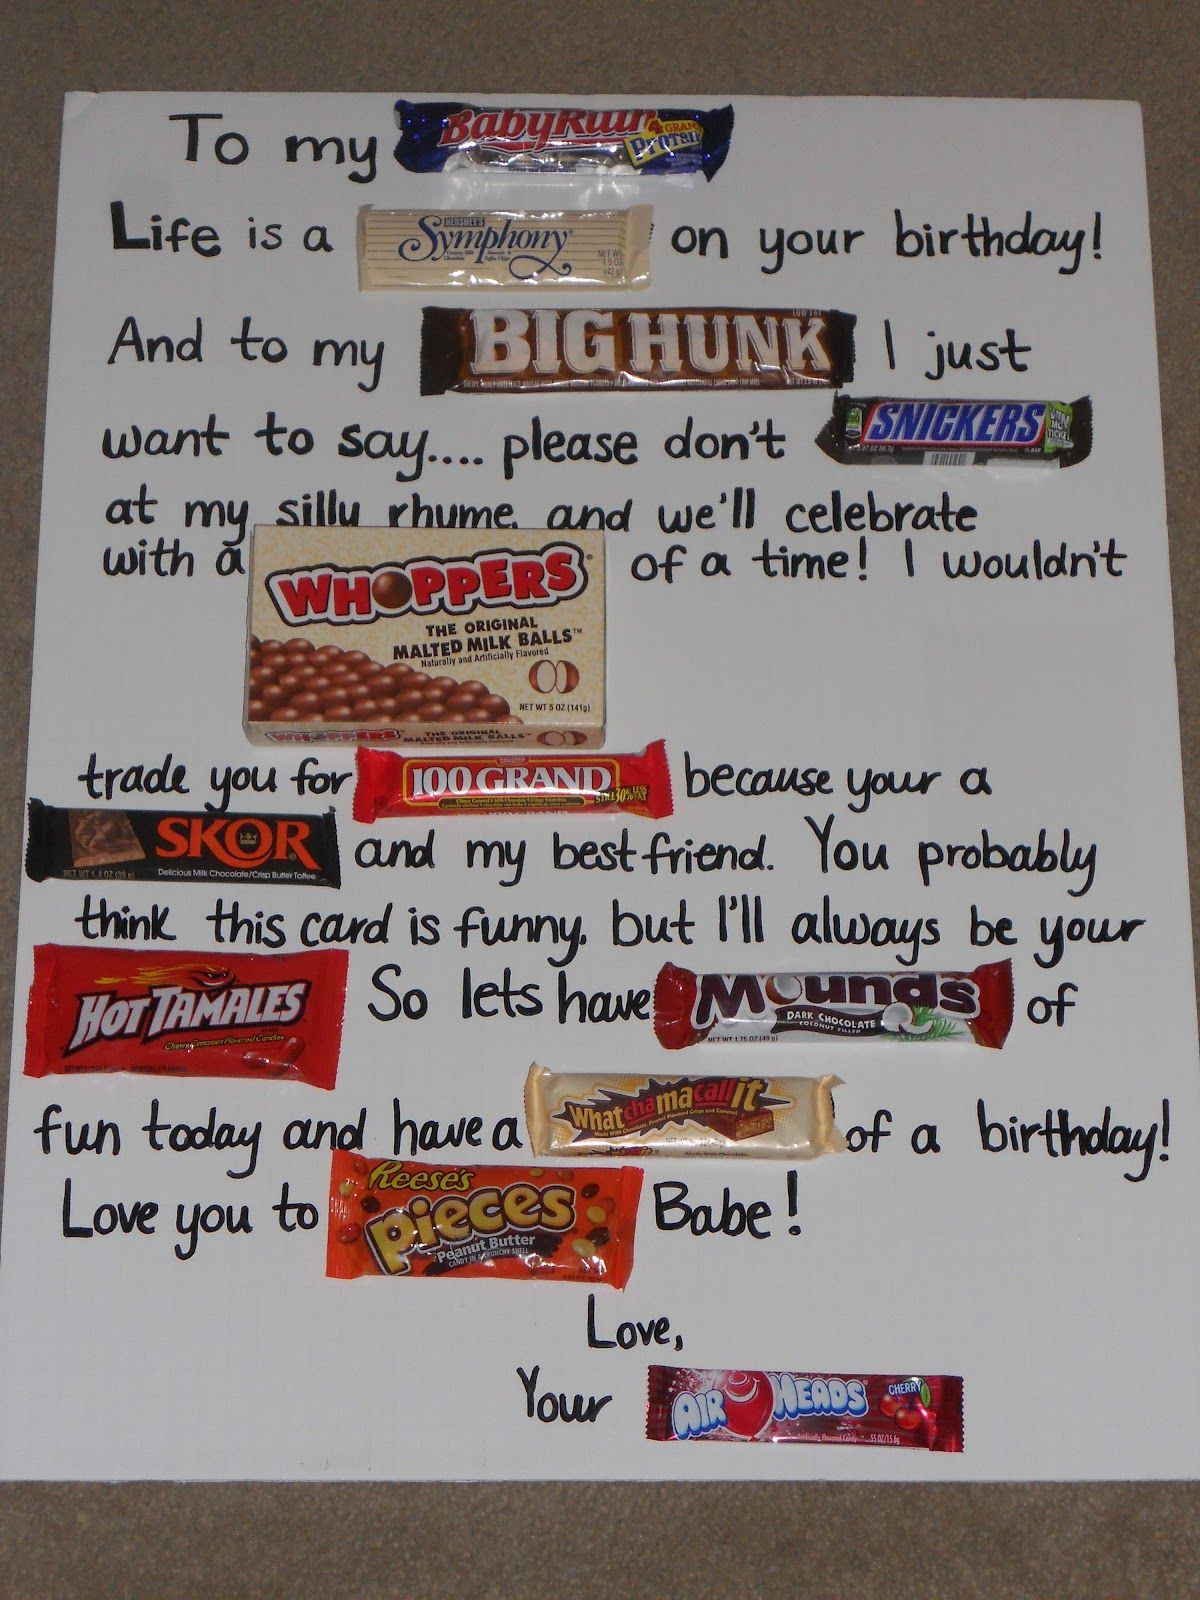 Candy bar poem birthday cardposter for someones birthday best candy bar poem birthday cardposter for someones birthday best for at least 40 bookmarktalkfo Images